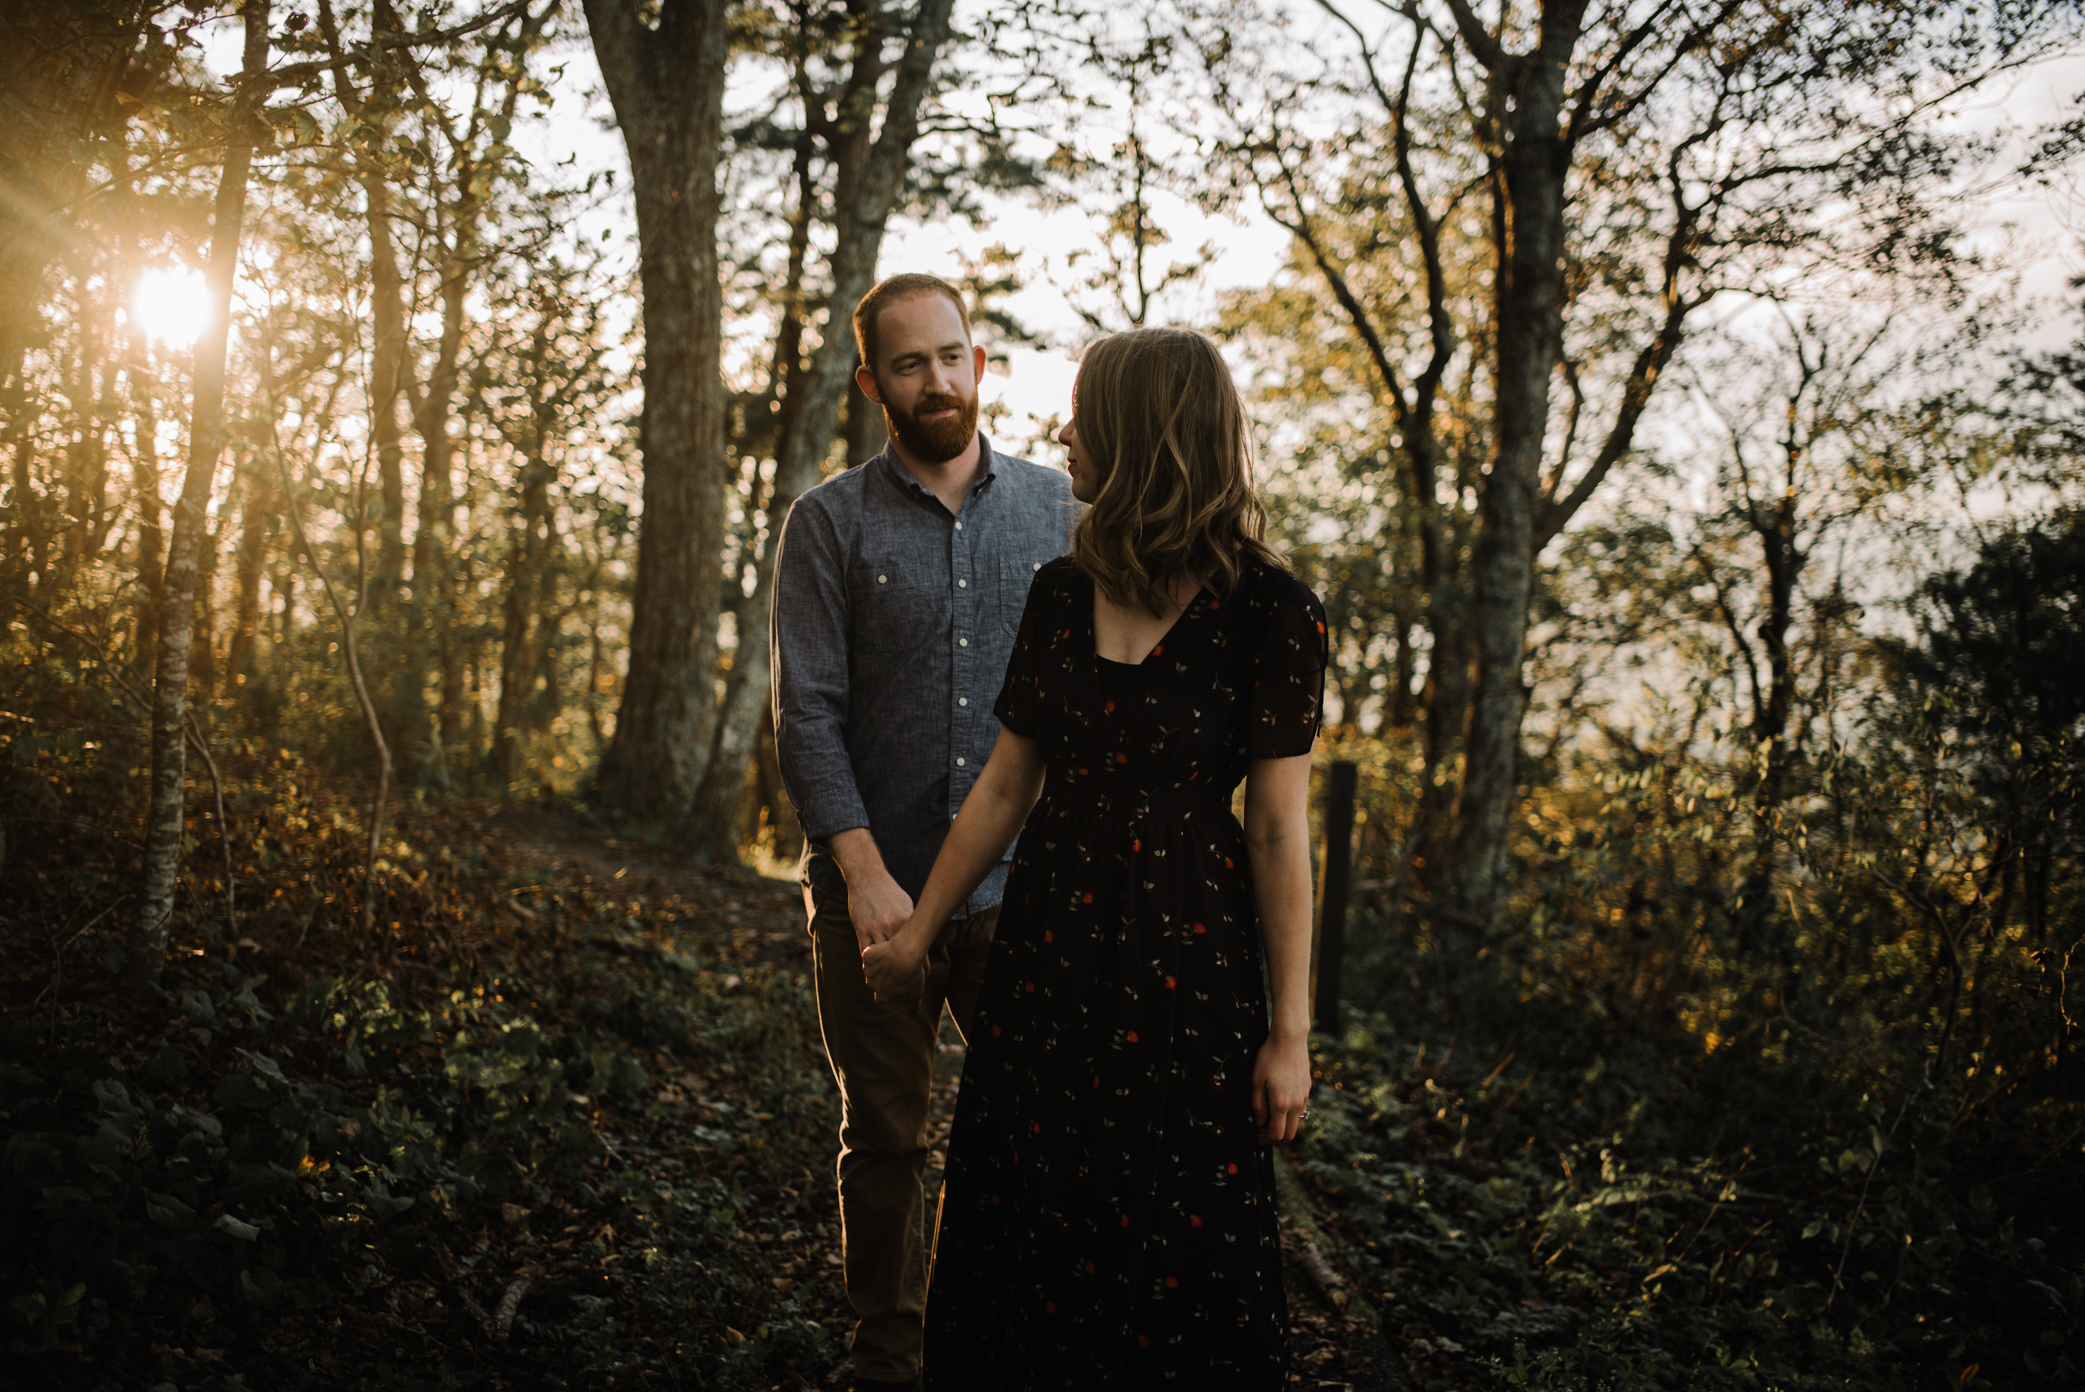 Molly and Zach Engagement Session - Fall Autumn Sunset Couple Adventure Session - Shenandoah National Park - Blue Ridge Parkway Skyline Drive - White Sails Creative_26.JPG